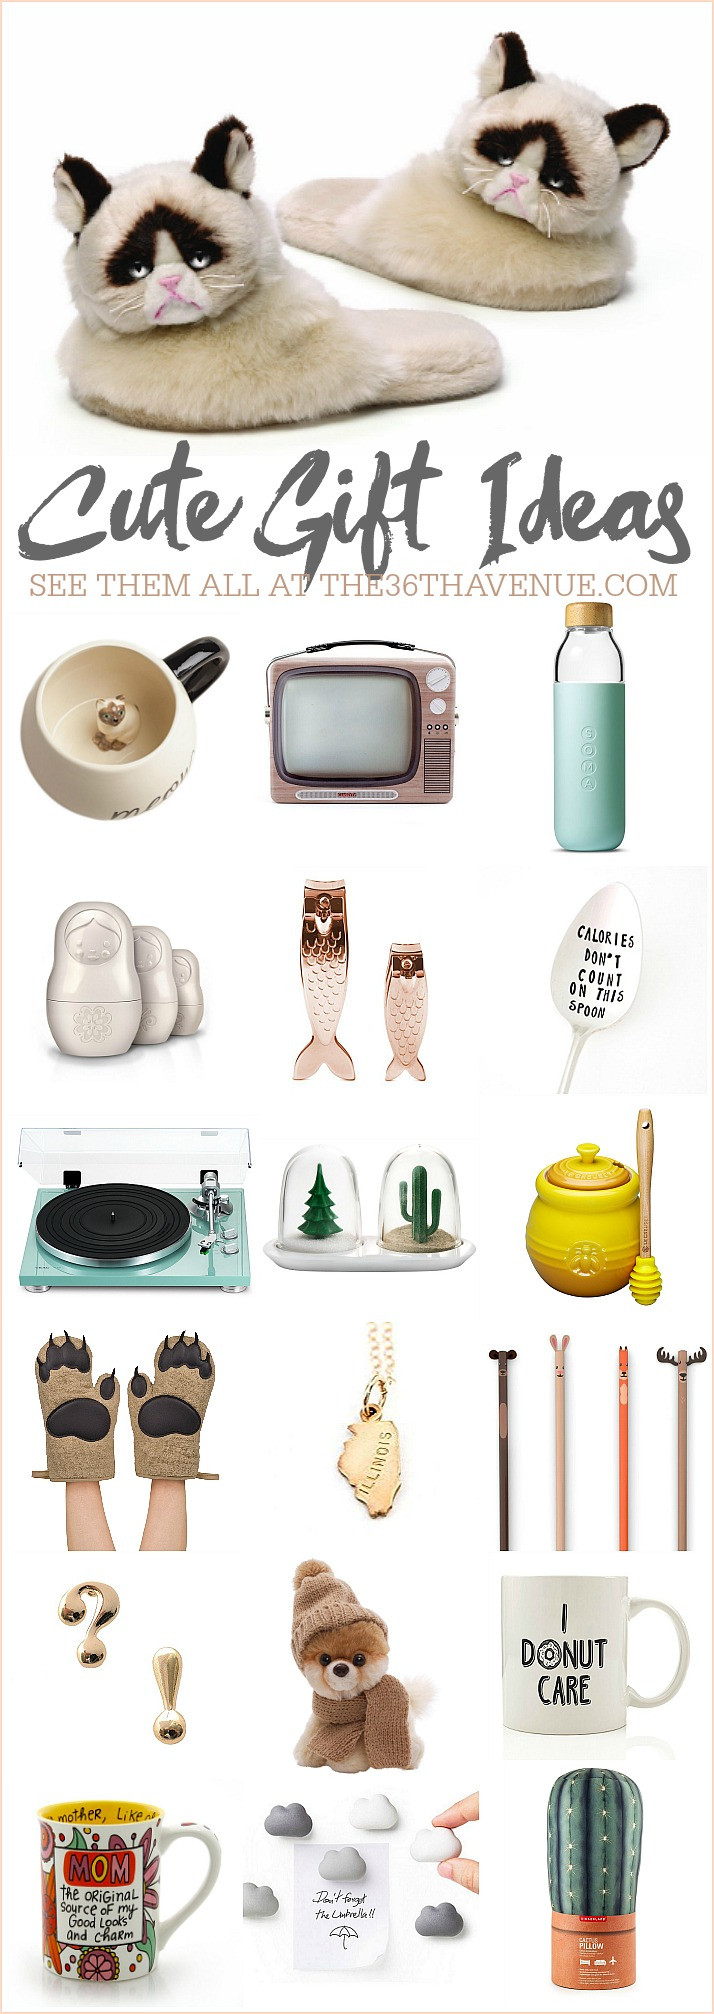 Ladies Christmas Gift Ideas  25 Gift Ideas Cute Women Gifts The 36th AVENUE